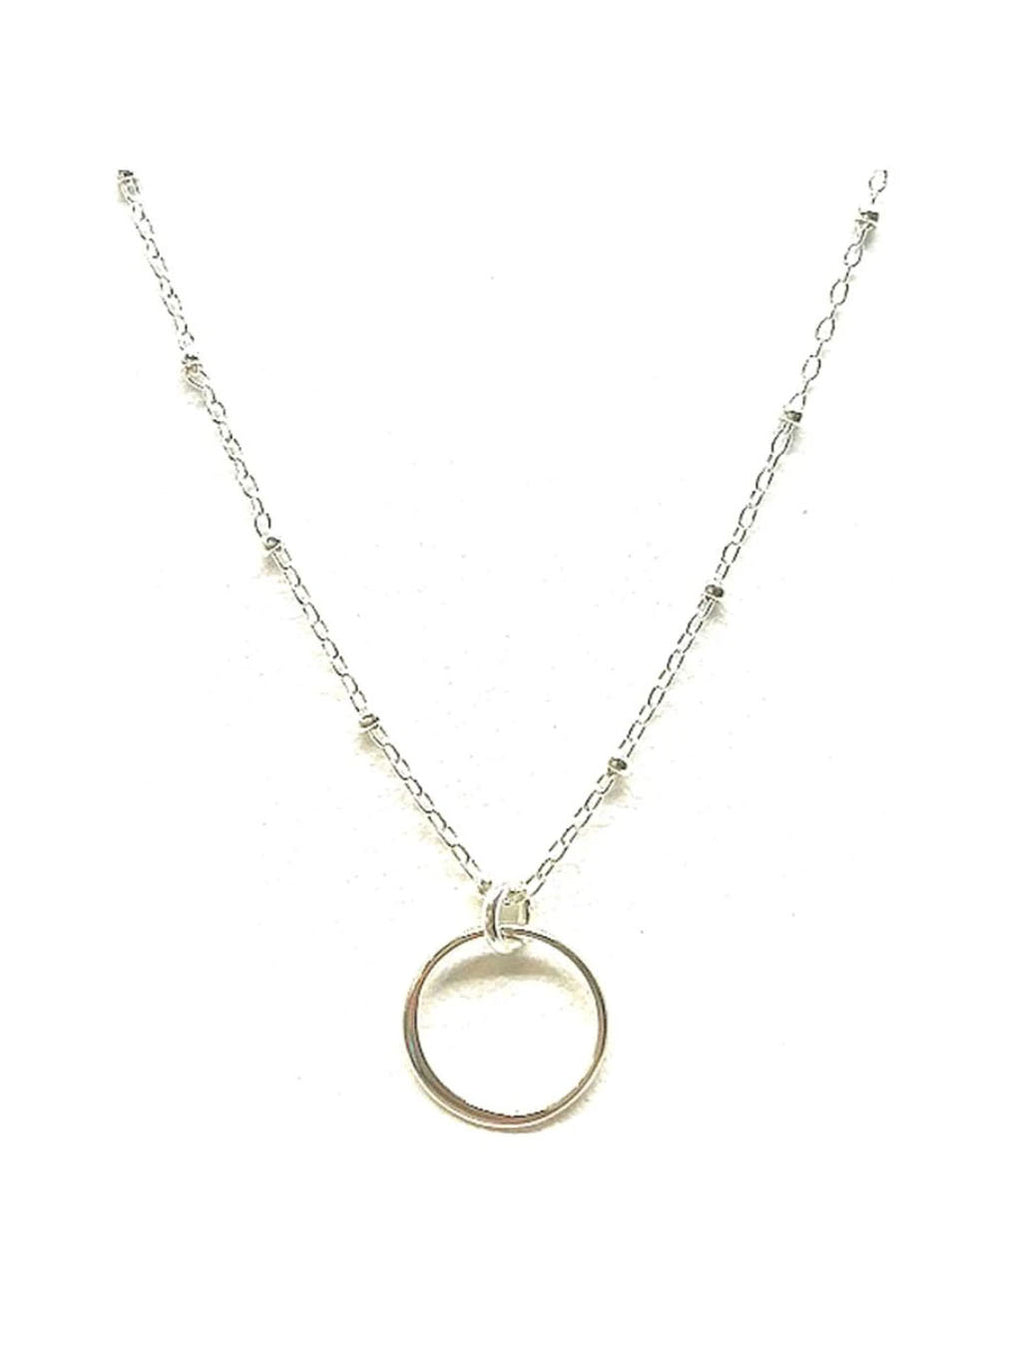 Athena Designs Circle Necklace in Silver